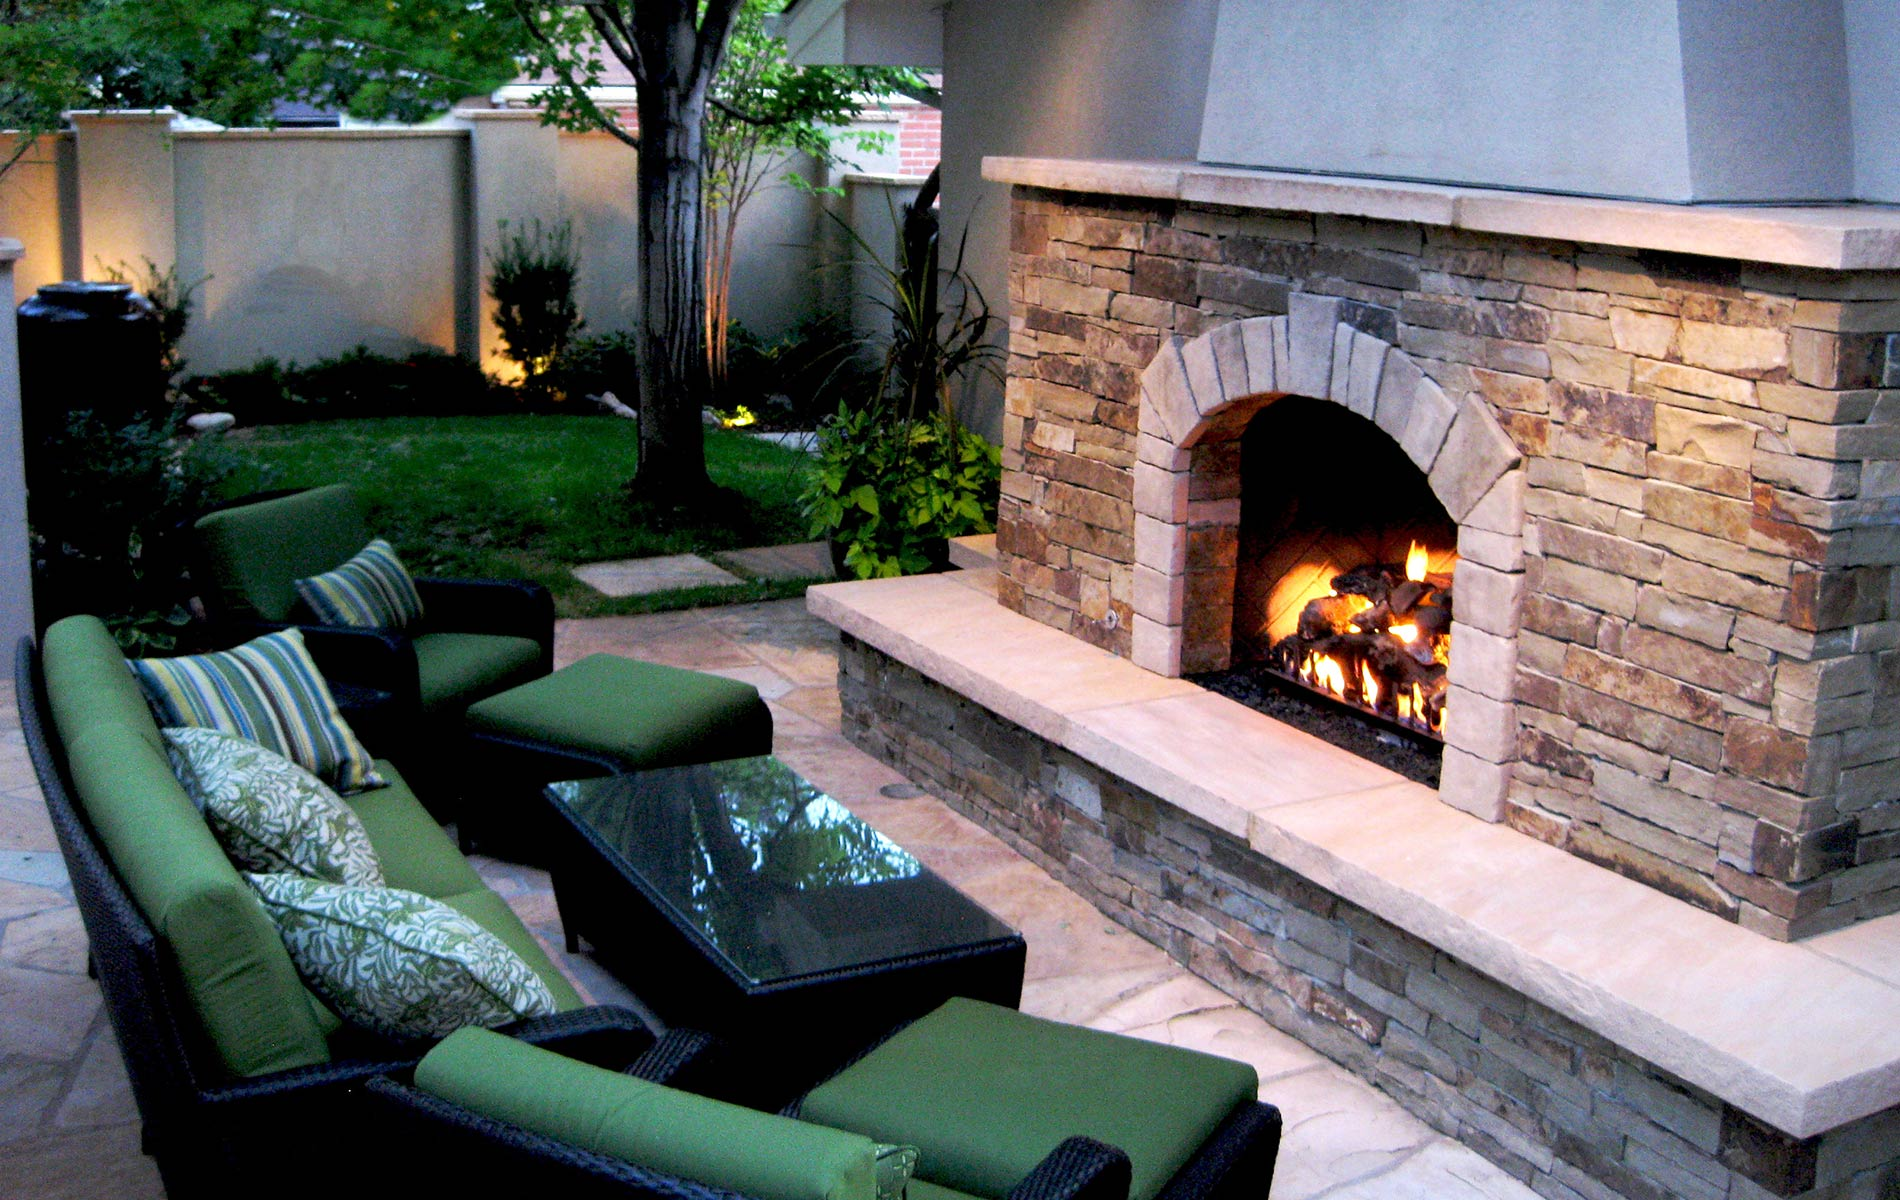 The fireplace and patio place - Mediterranean Courtyard Fireplace Mediterranean Patio Orange Mediterranean Courtyard Fireplace Mediterranean Patio Orange Stone Fire Place